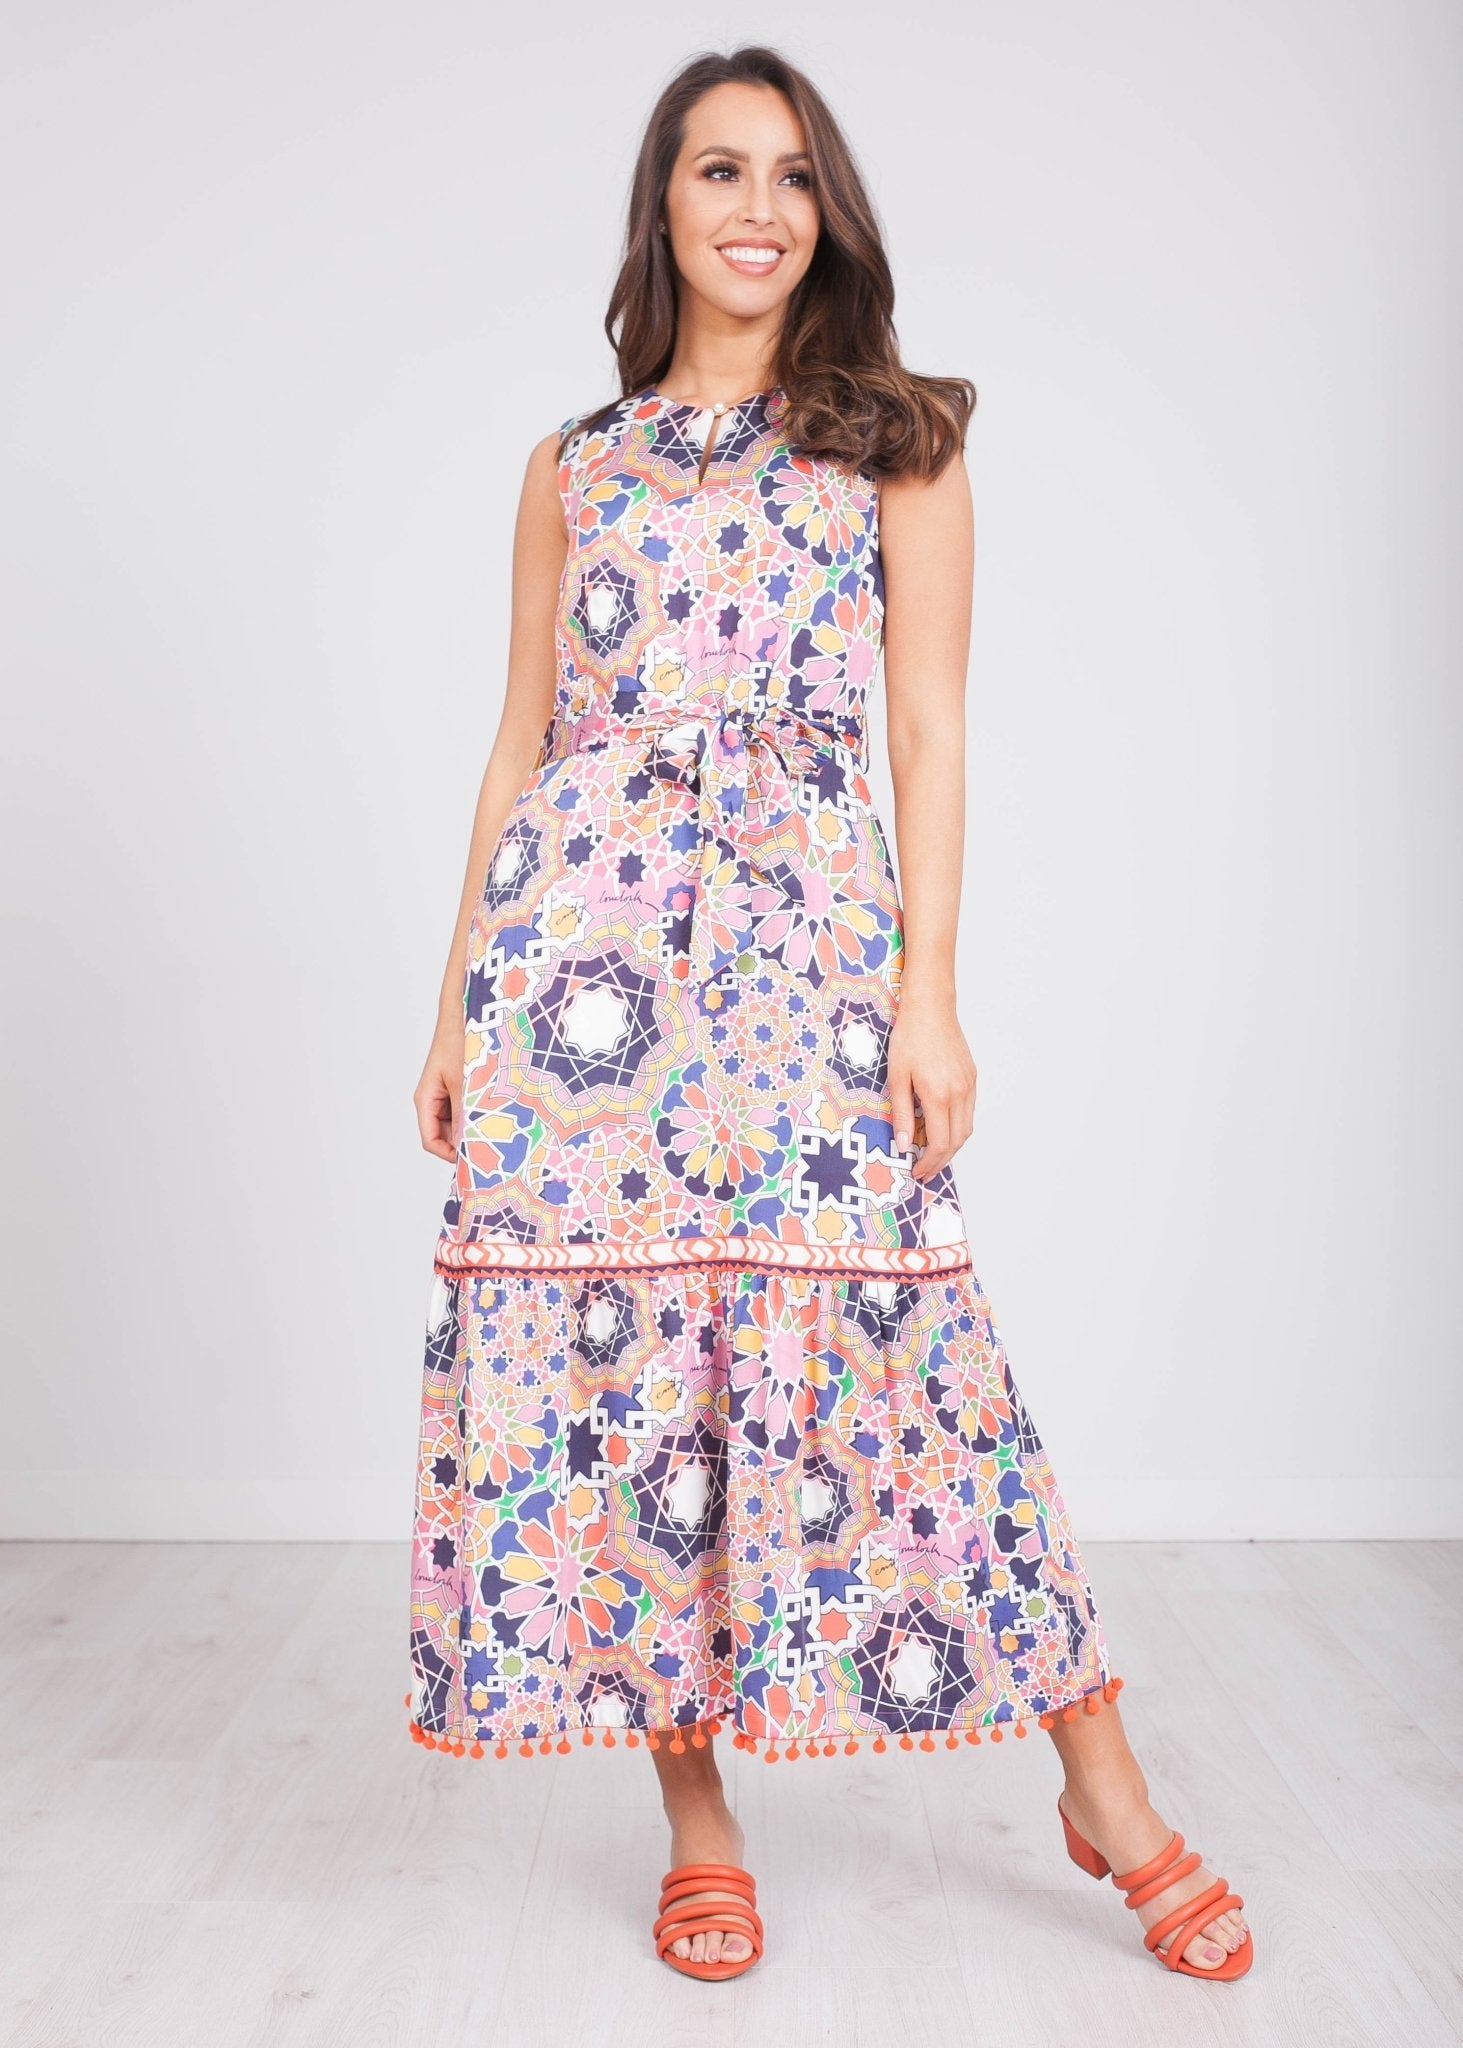 Emily Sleeveless Printed Dress - The Walk in Wardrobe